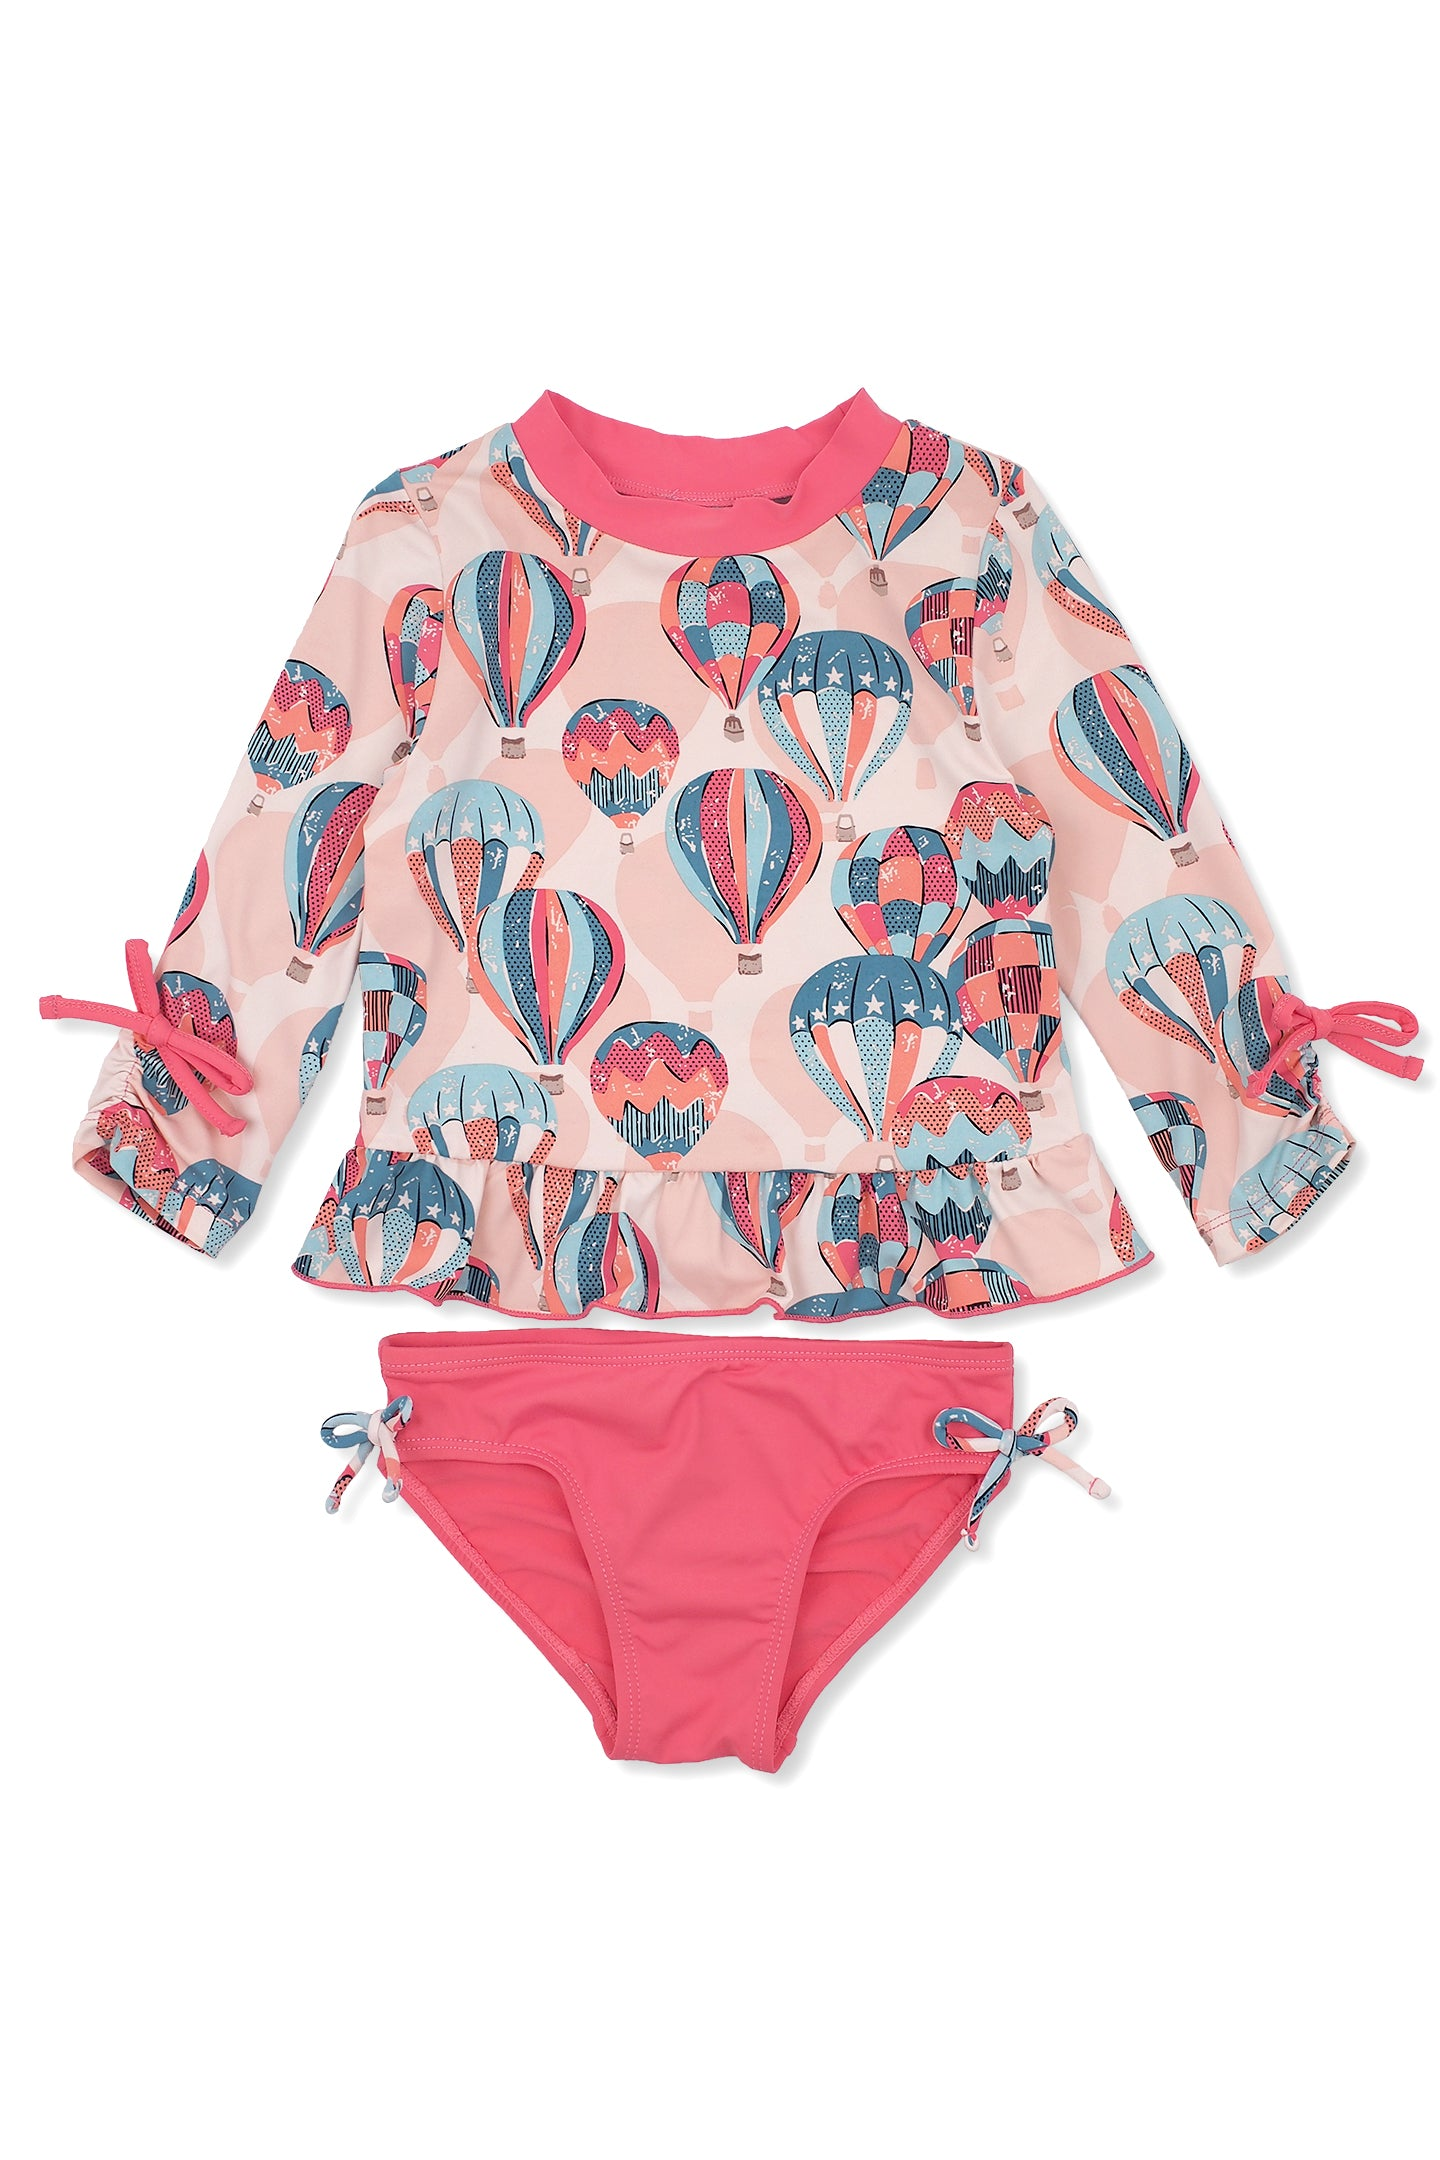 Hot Air Balloons 3/4 Sleeve Rash Guard Set, peach